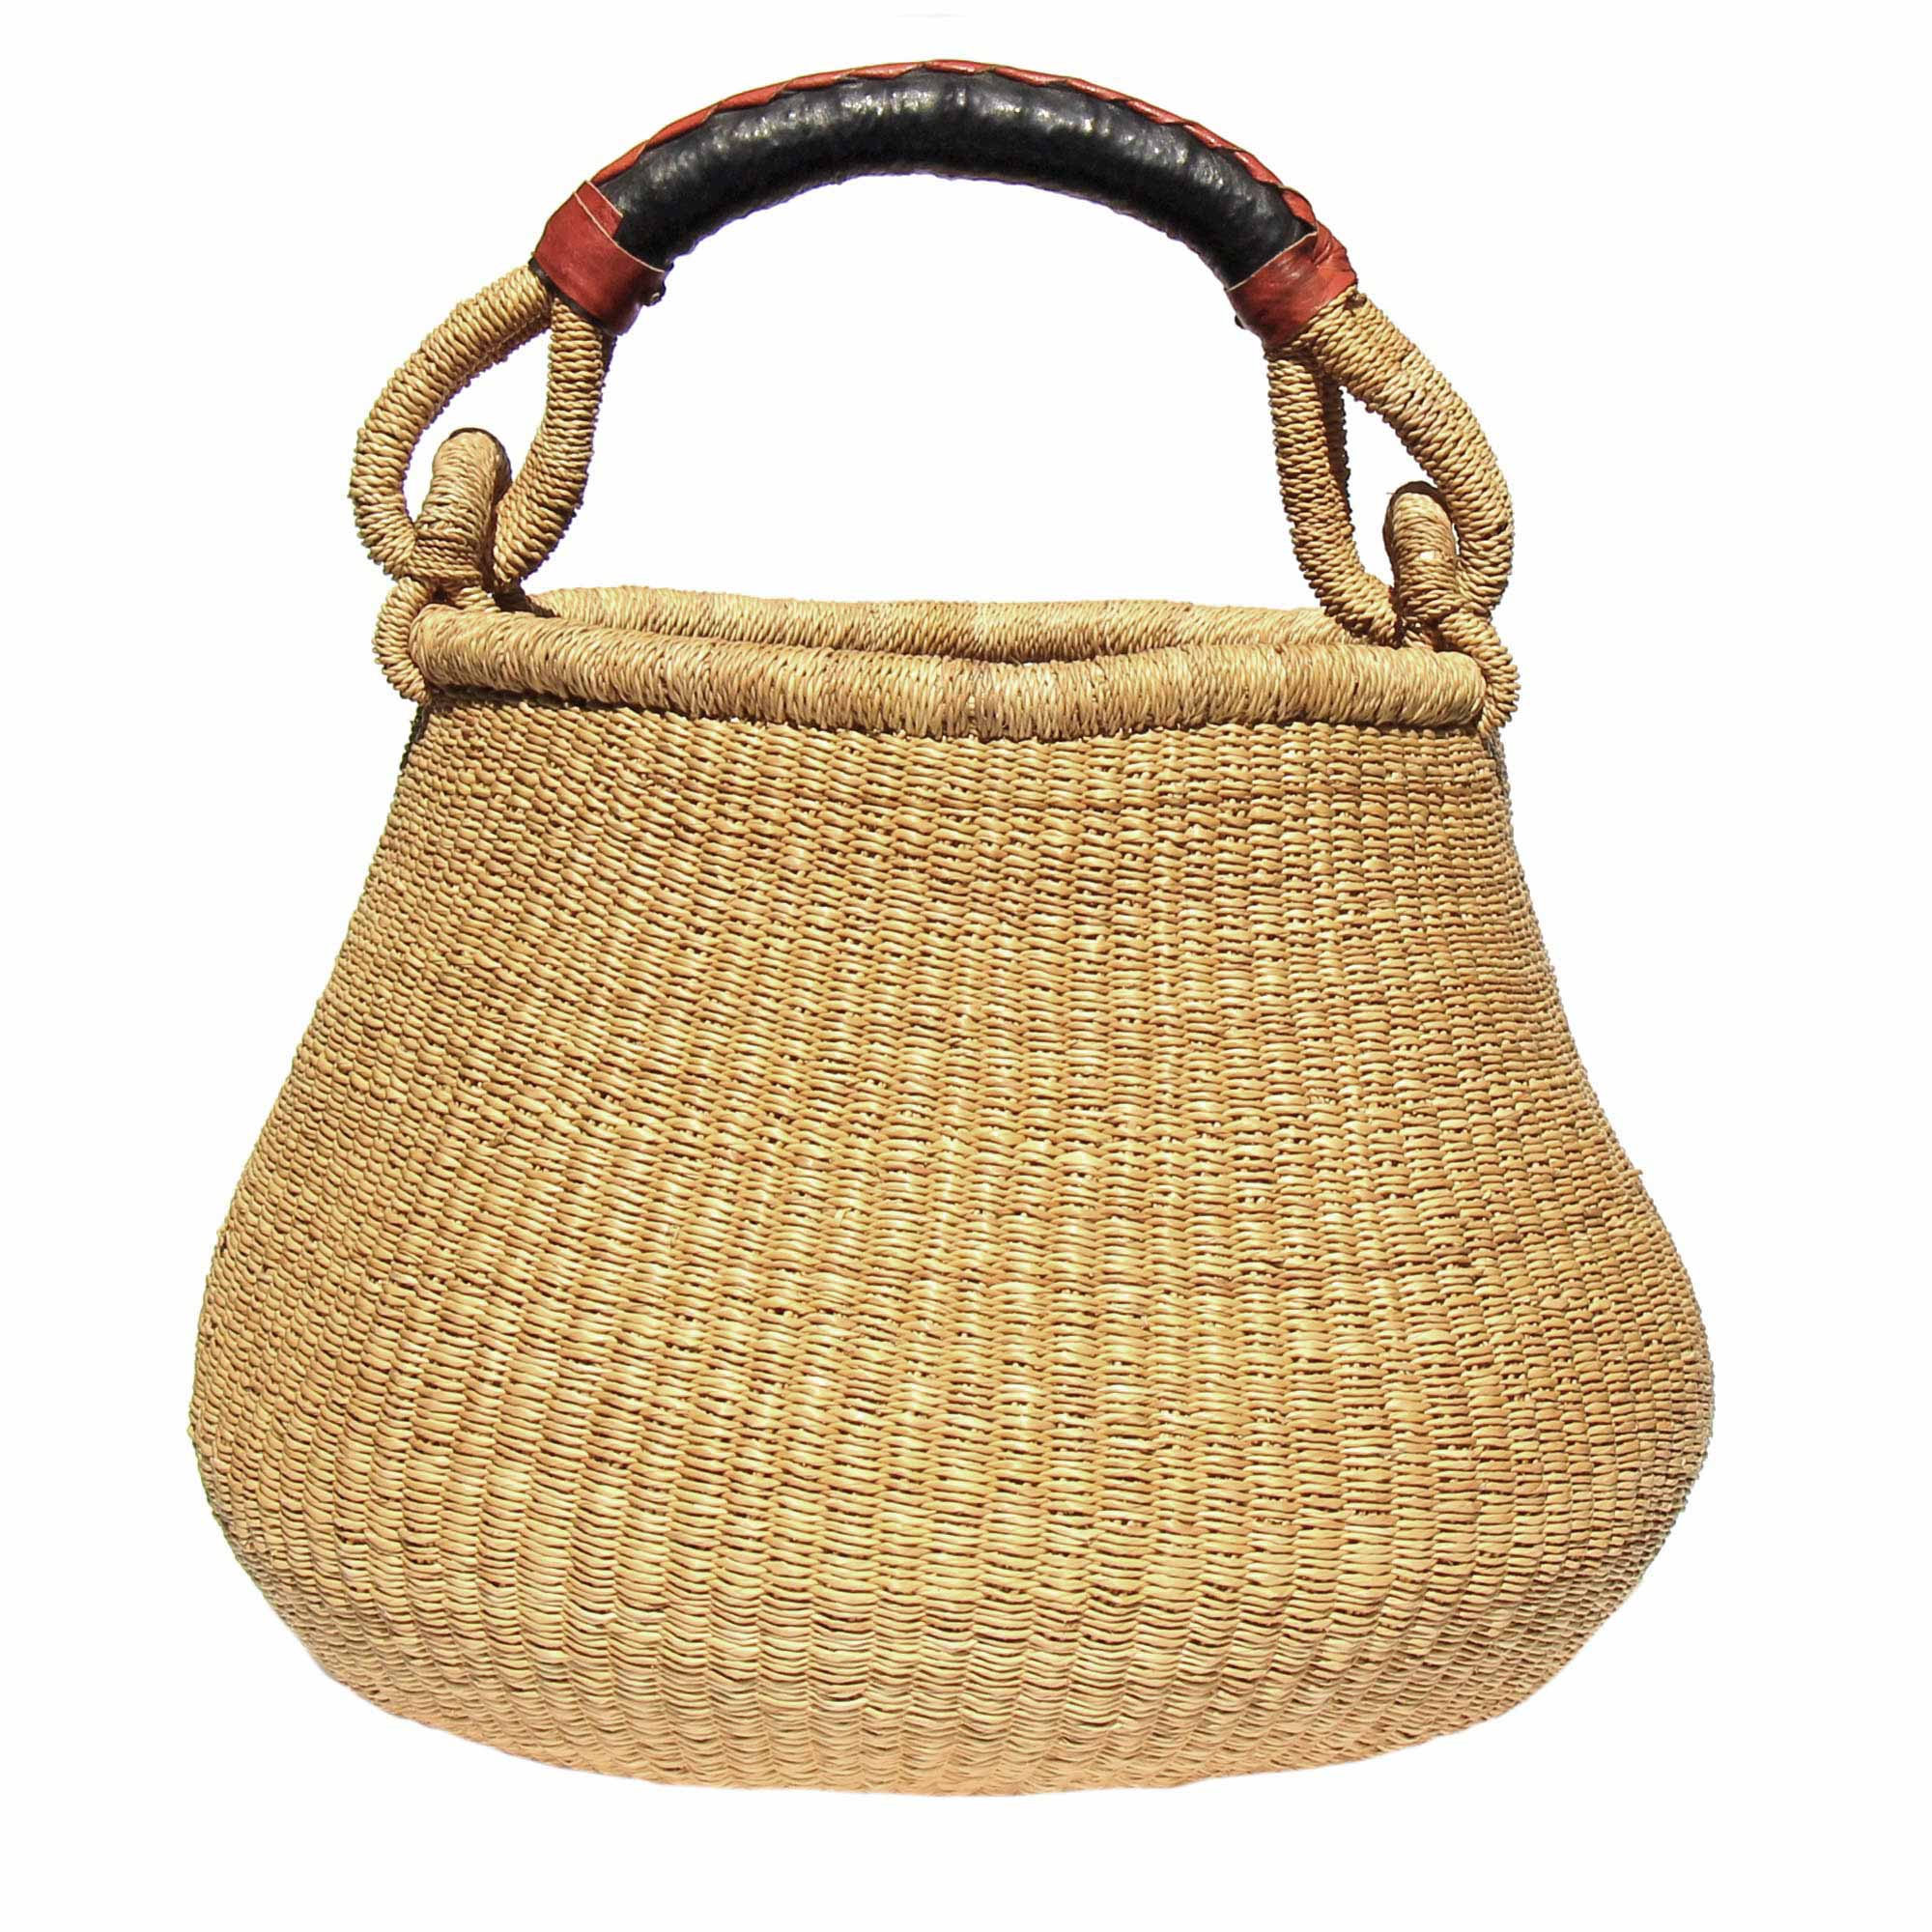 Bolga Pot Basket - Natural with Leather Handle